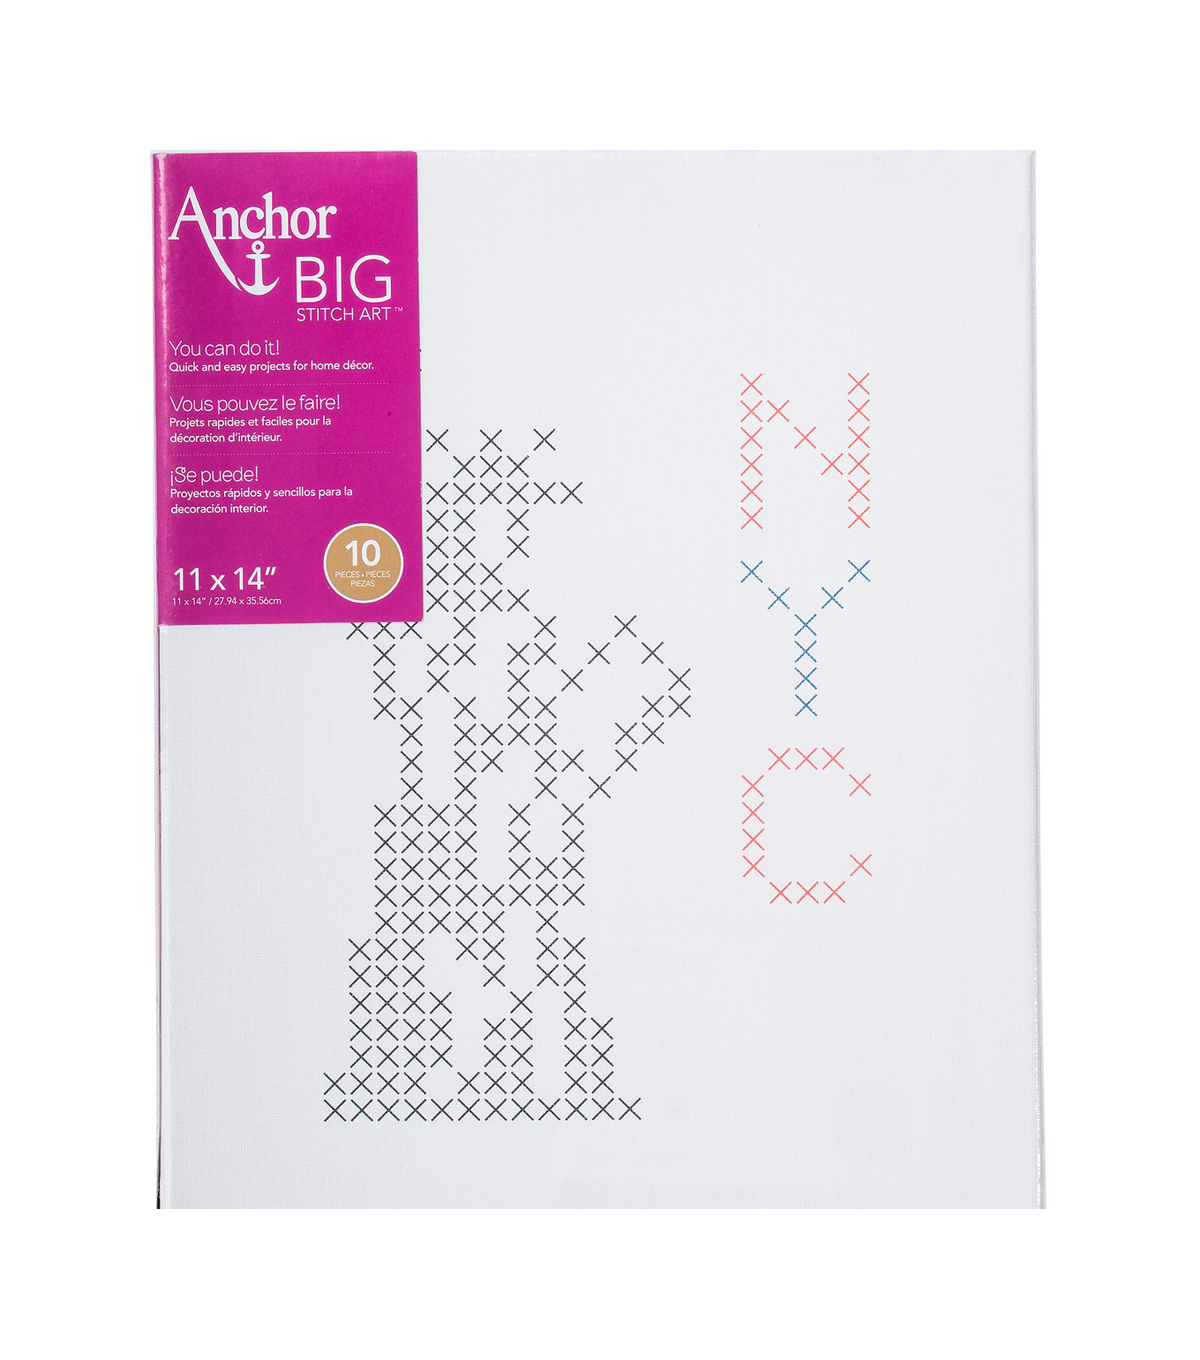 Anchor Big Stitch Art Cross Stitch Kit-NYC Stamped on Stretched Canvas